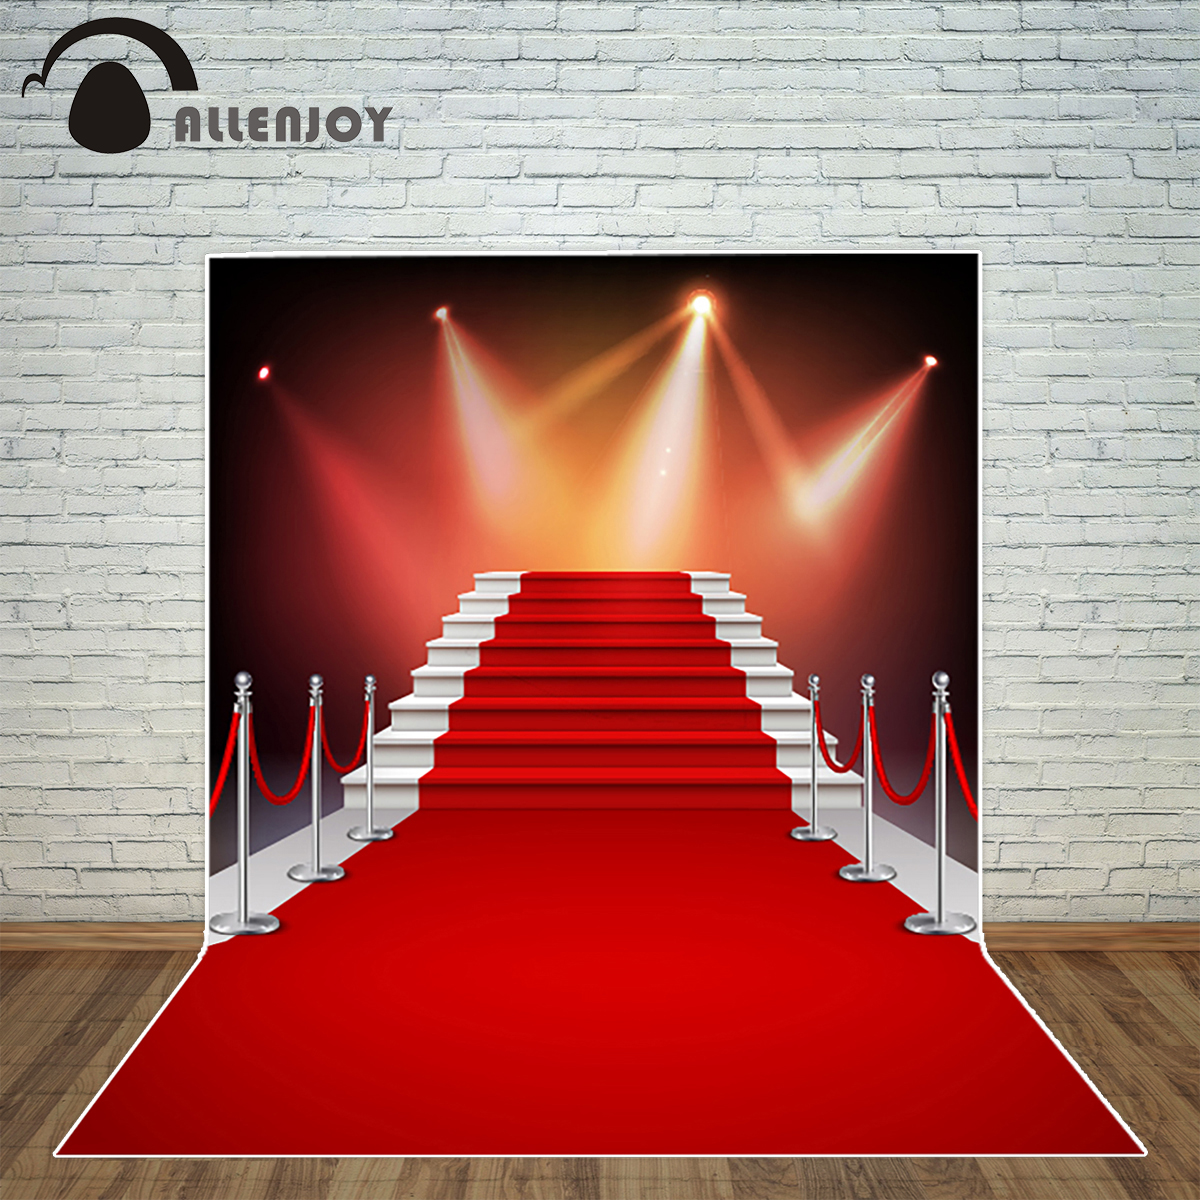 Allenjoy photography backdrop white stairs red carpet realistic background photo studio new design camera fotografica